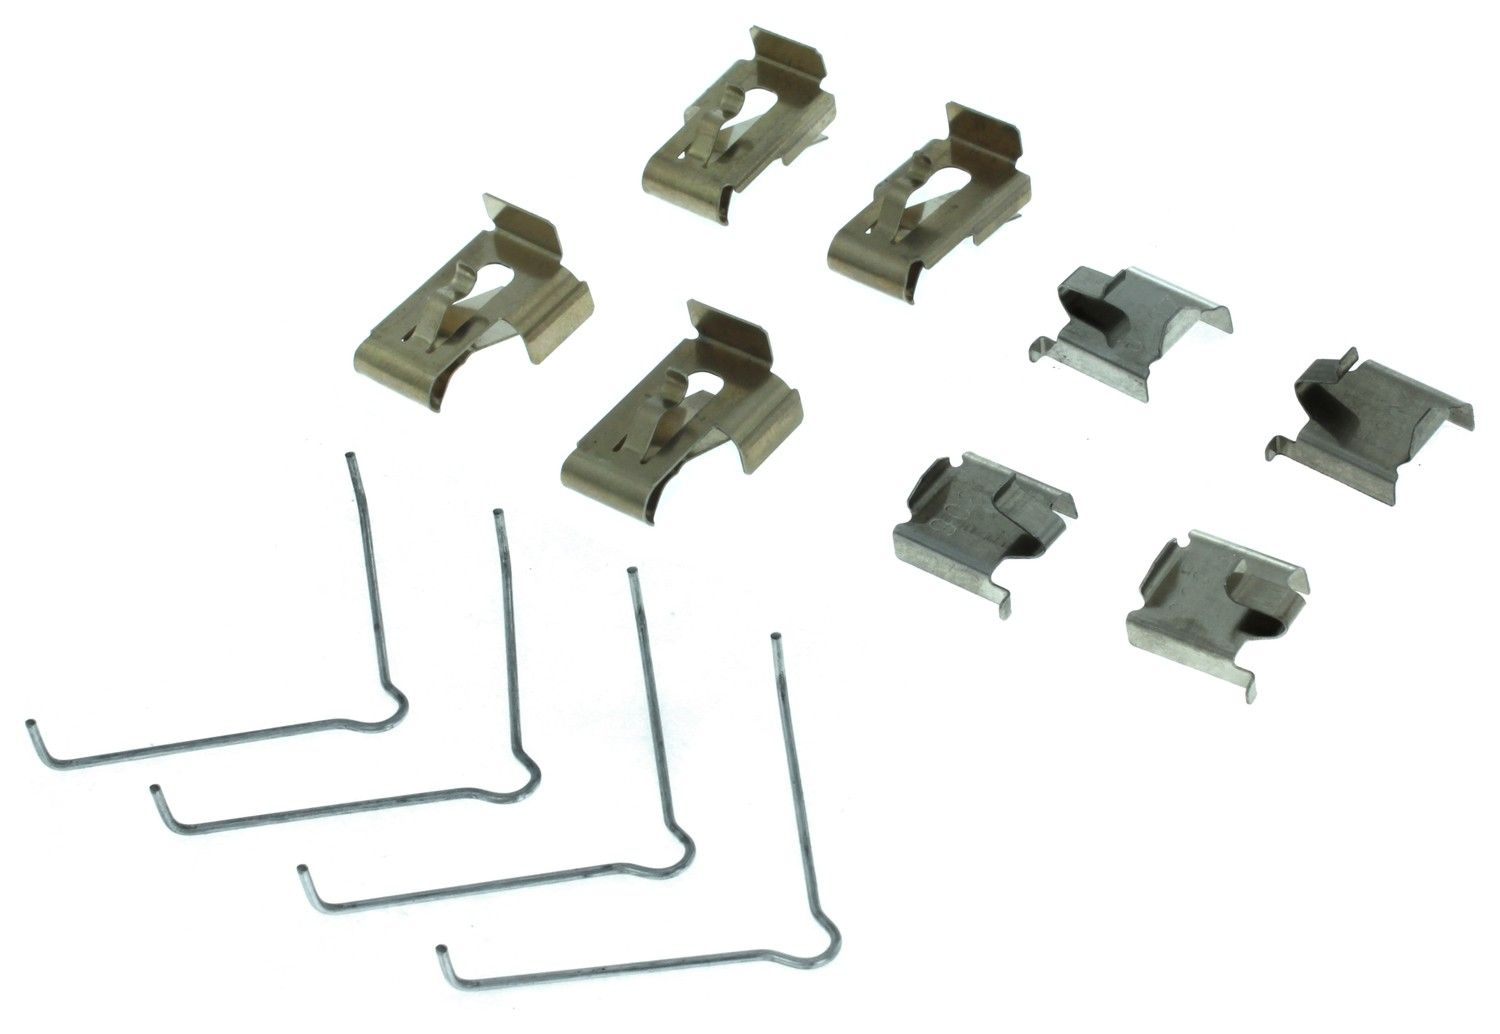 Mazda Rx 7 Disc Brake Hardware Kit Replacement Beck Arnley Carlson 1990 Engine Diagram 1989 Rear Centric 11745018 Solid